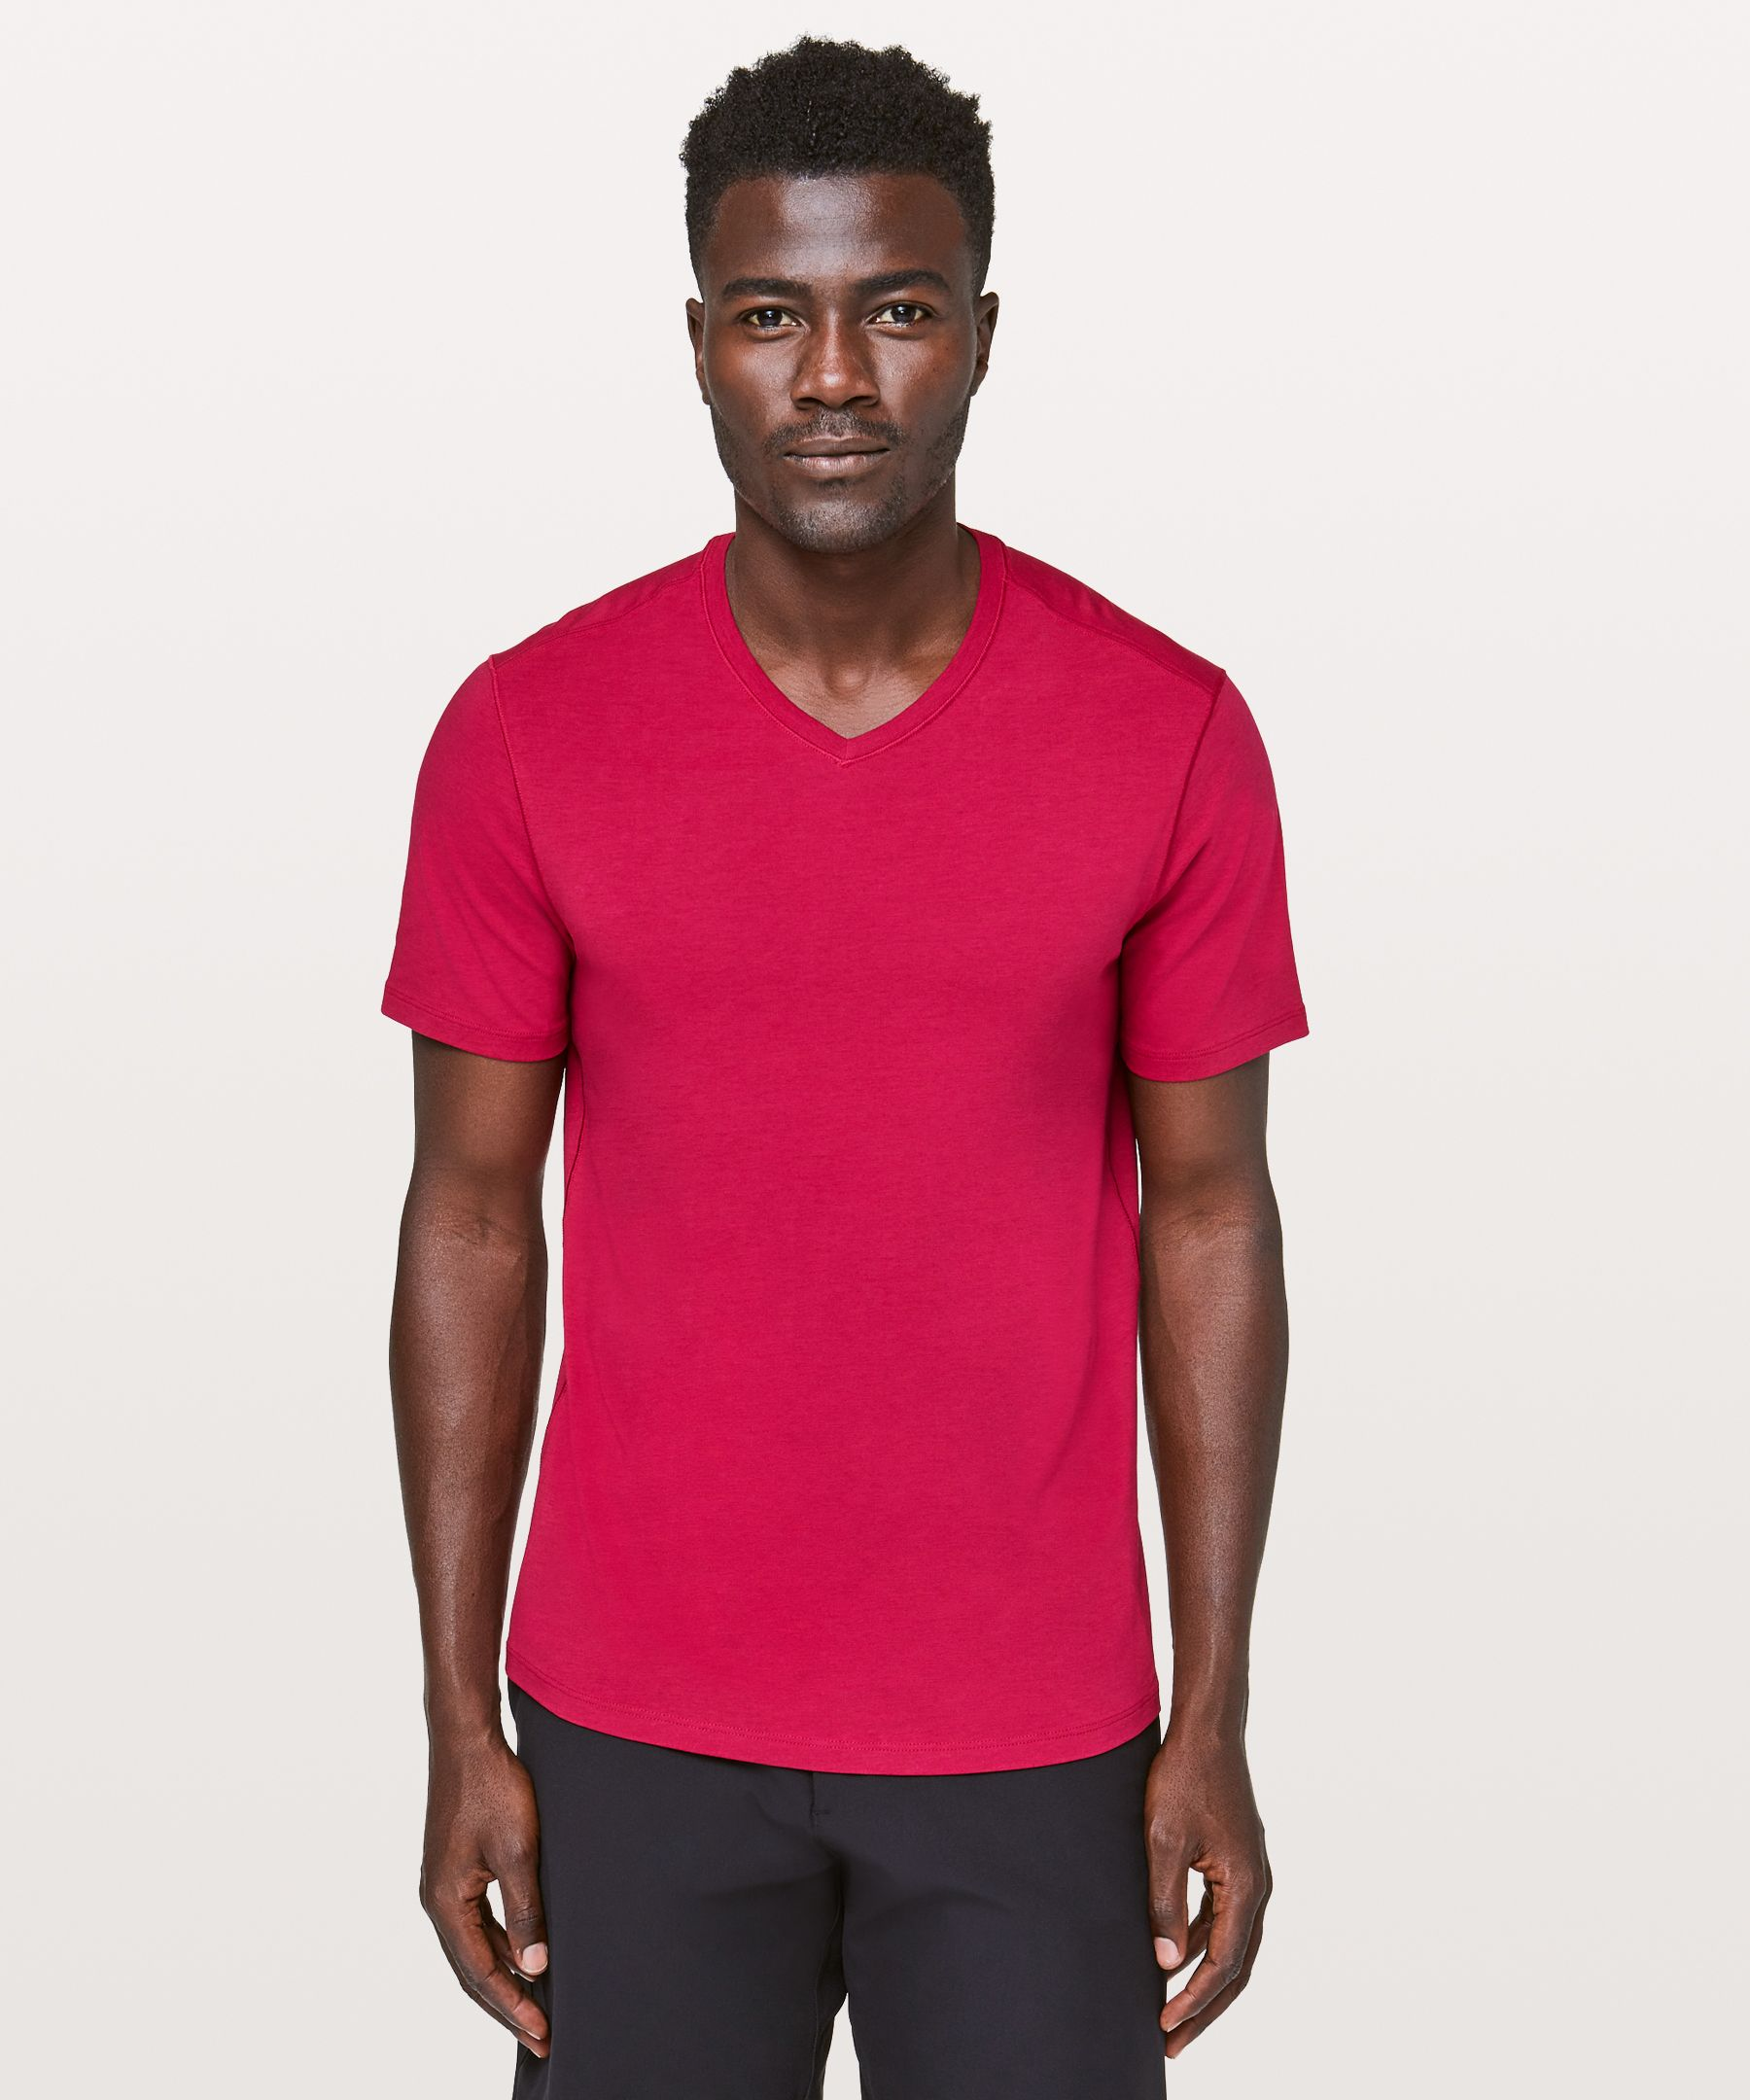 5 Year Basic V Updated Fit New by Lululemon